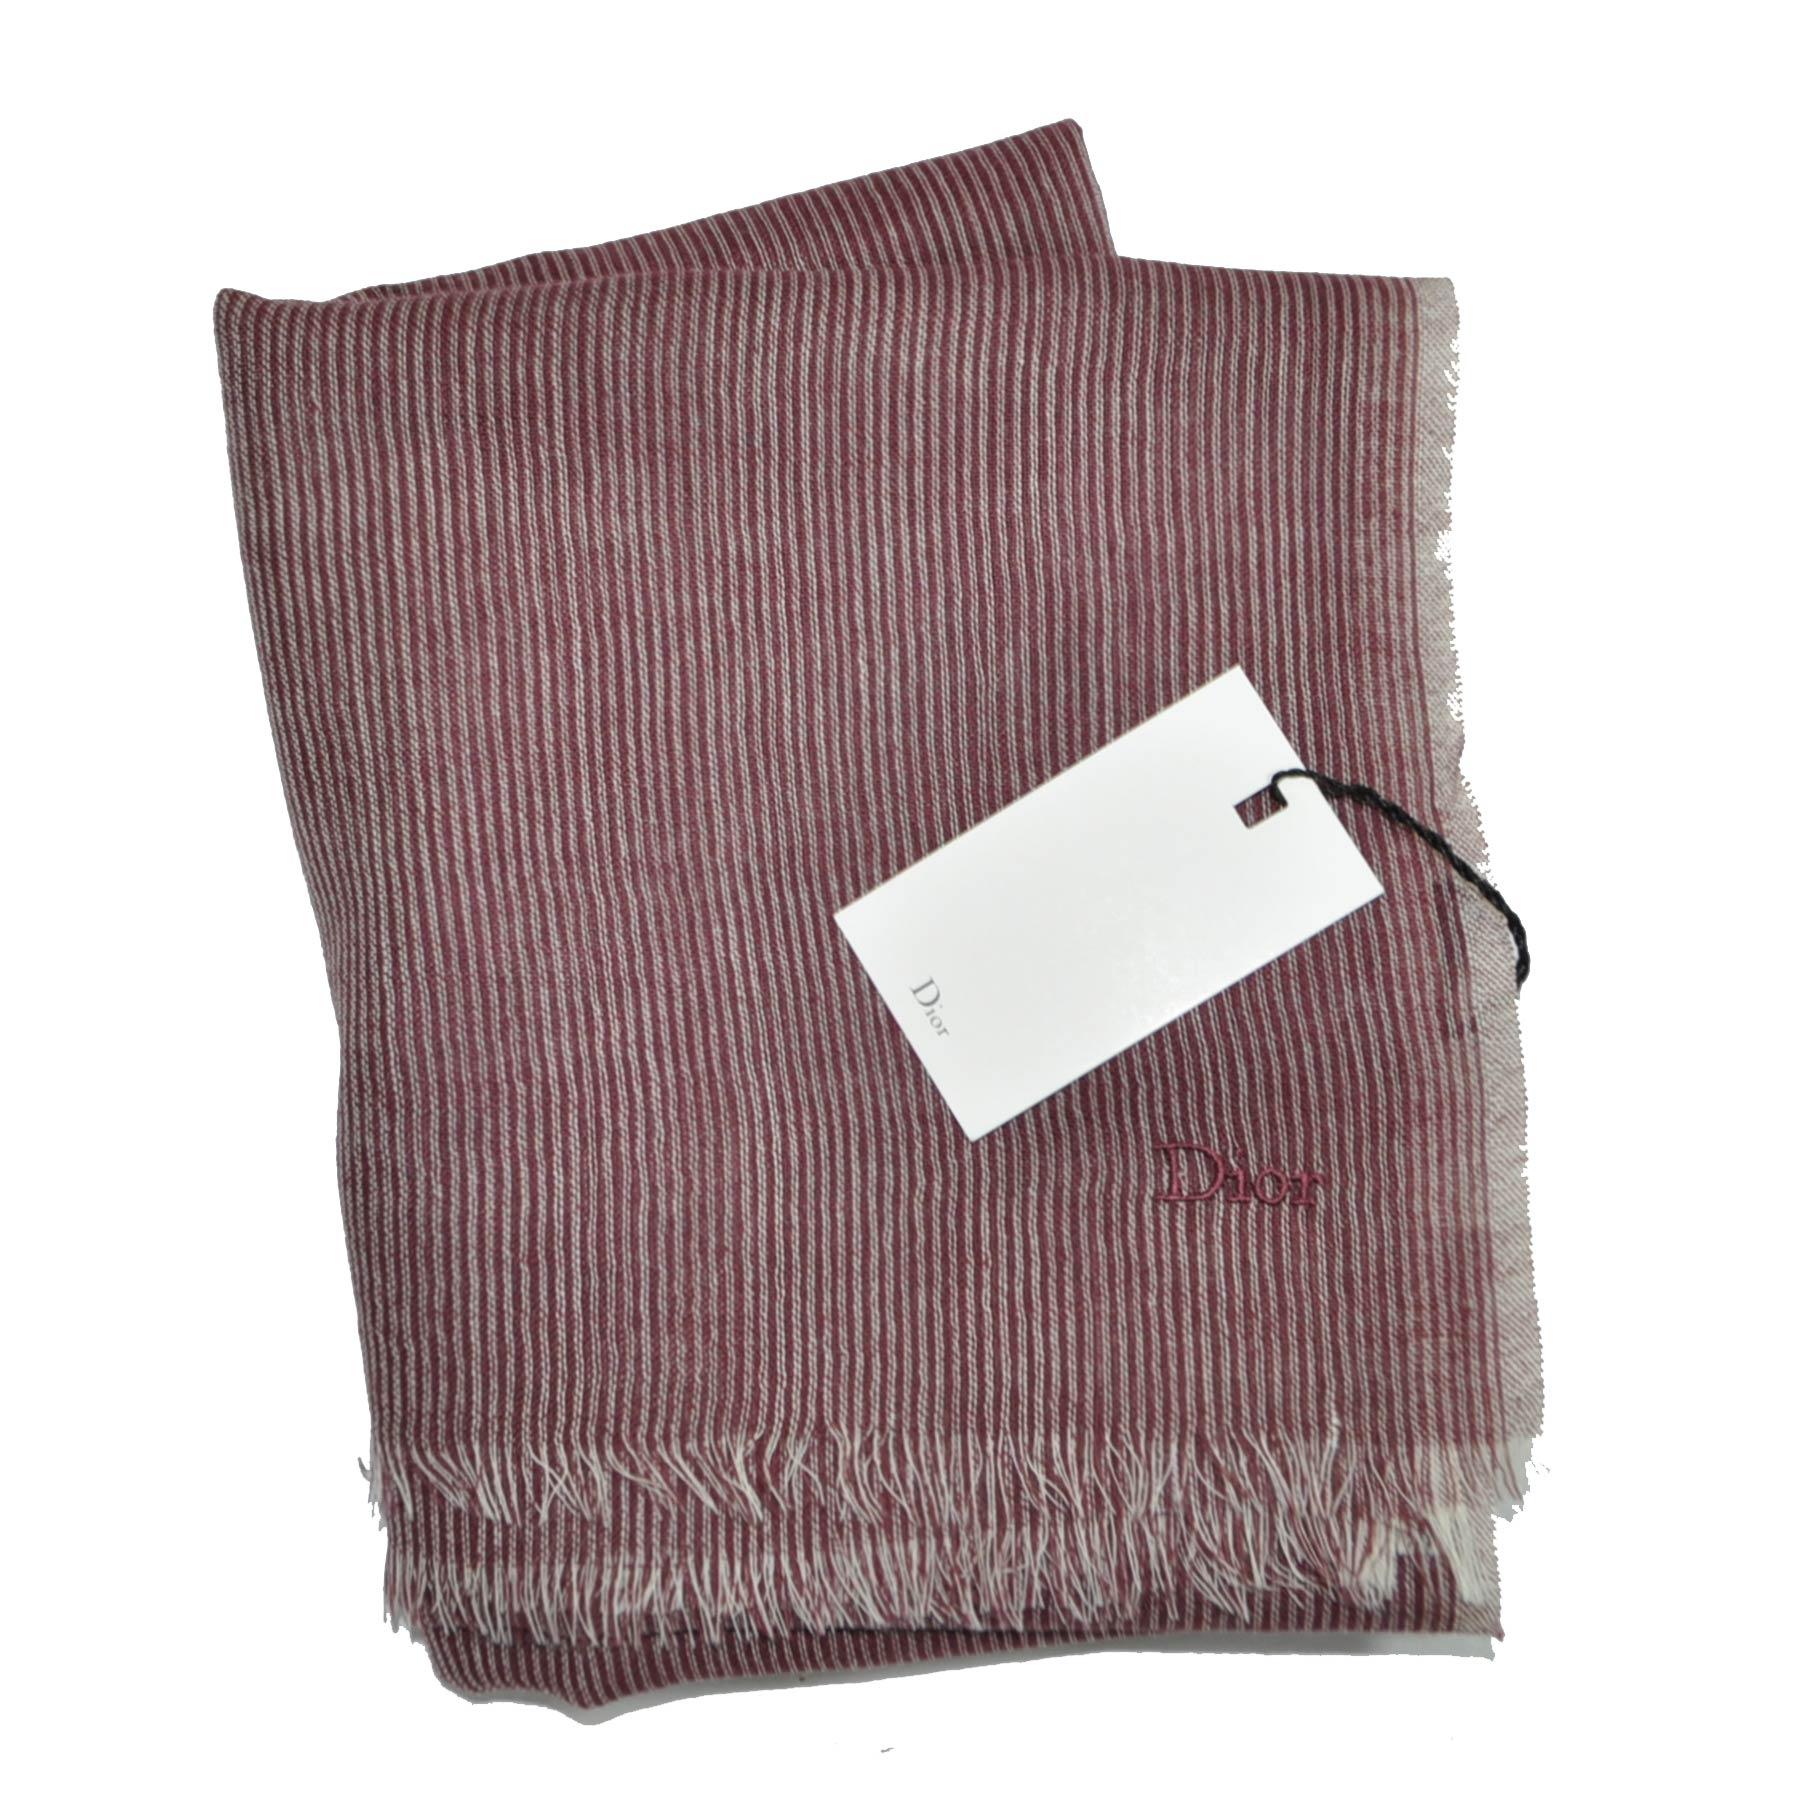 Dior Scarf Maroon Gray Stripes Wool Shawl